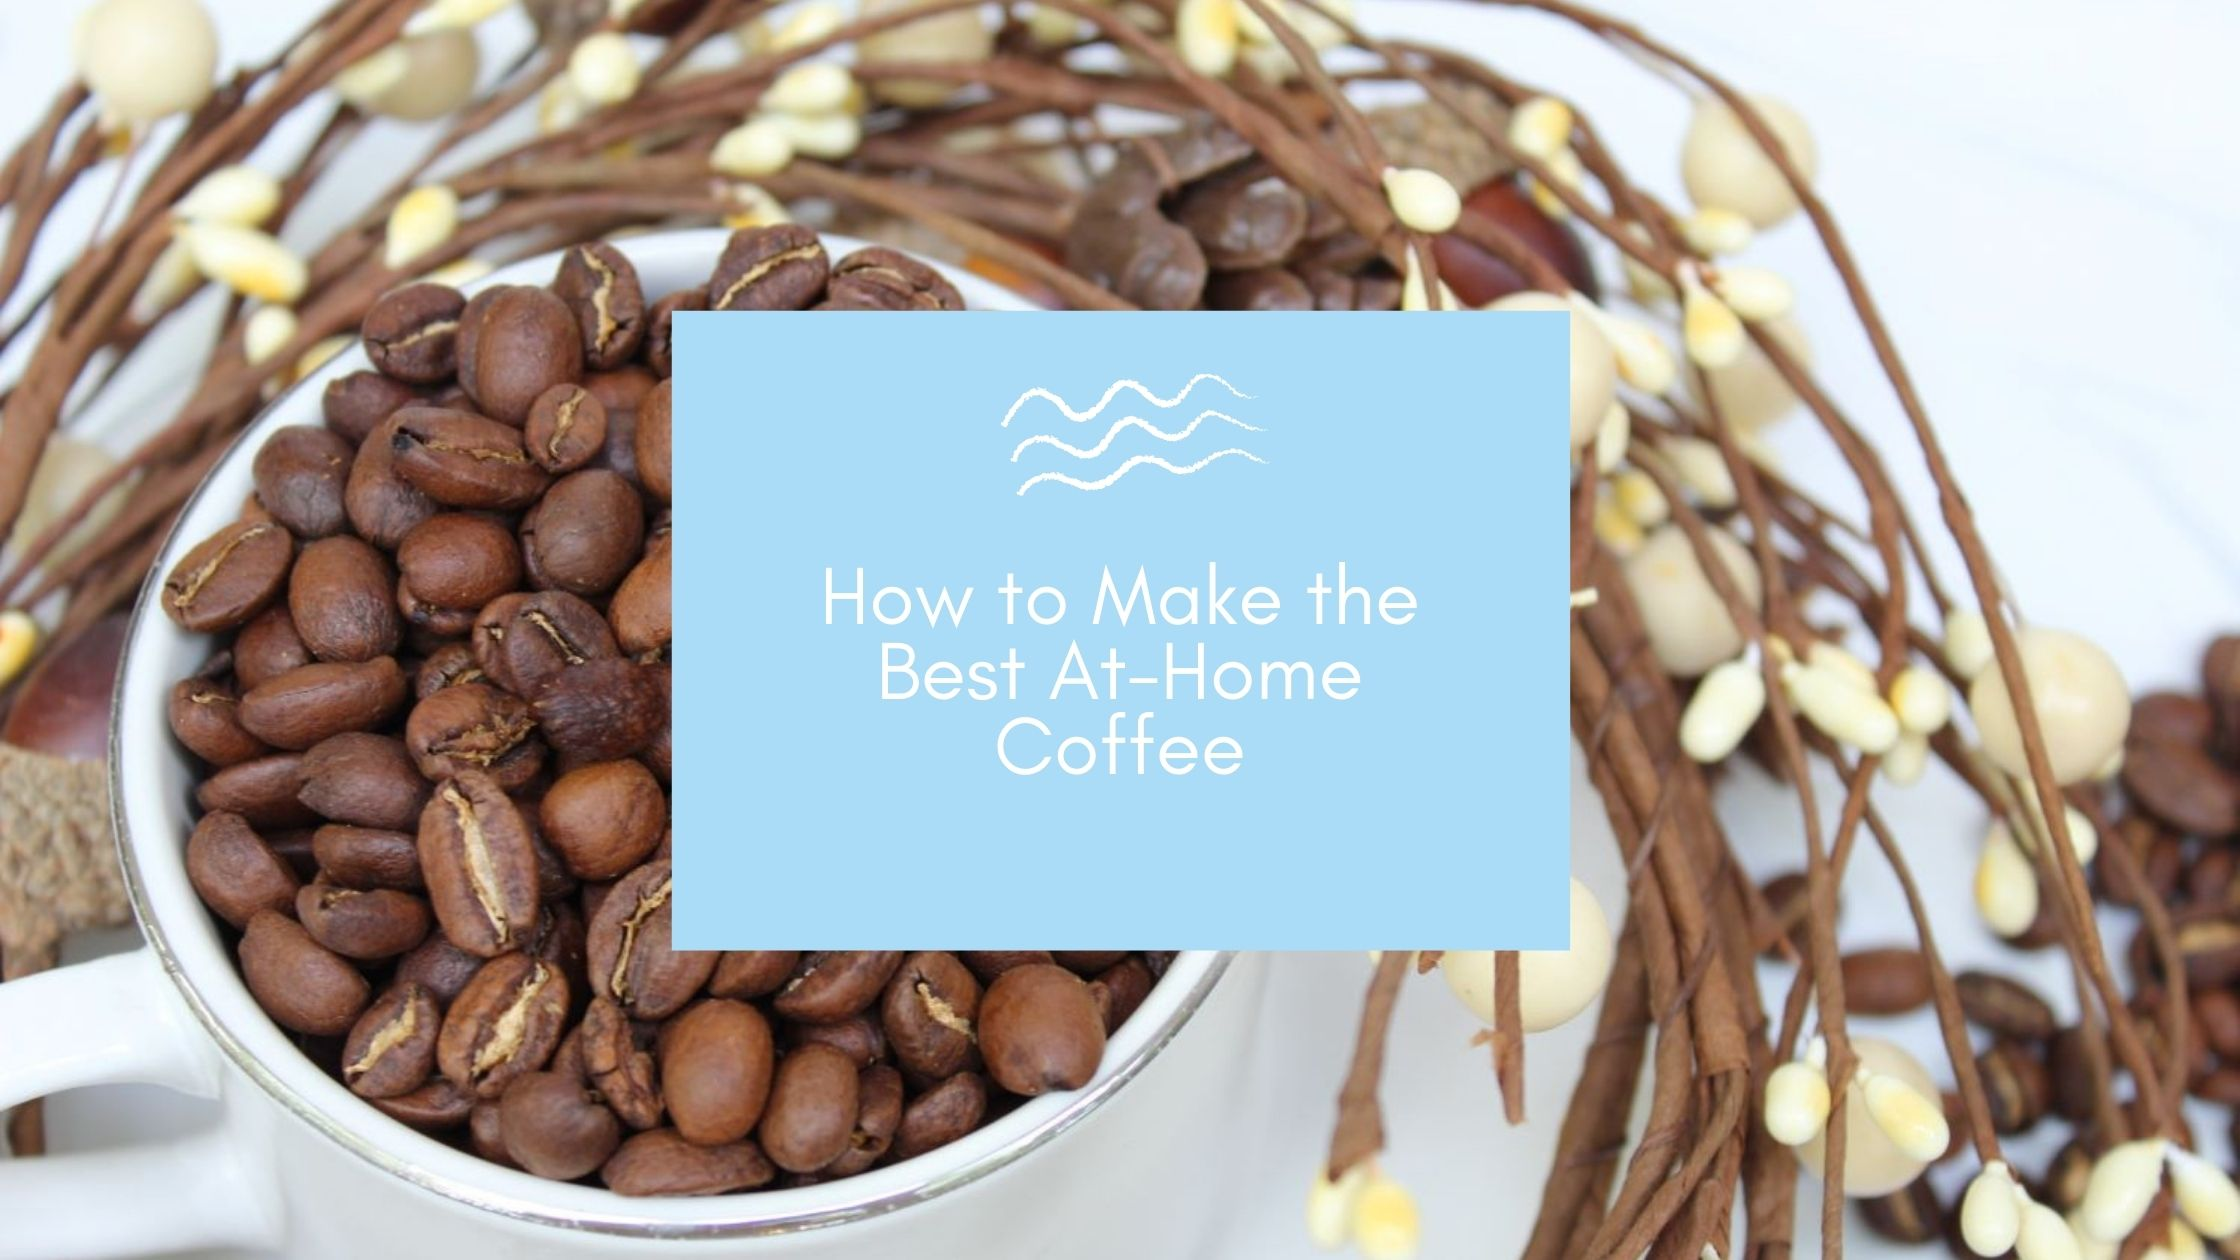 How to Make the Best At-Home Coffee – featuring Boca Java Coffee